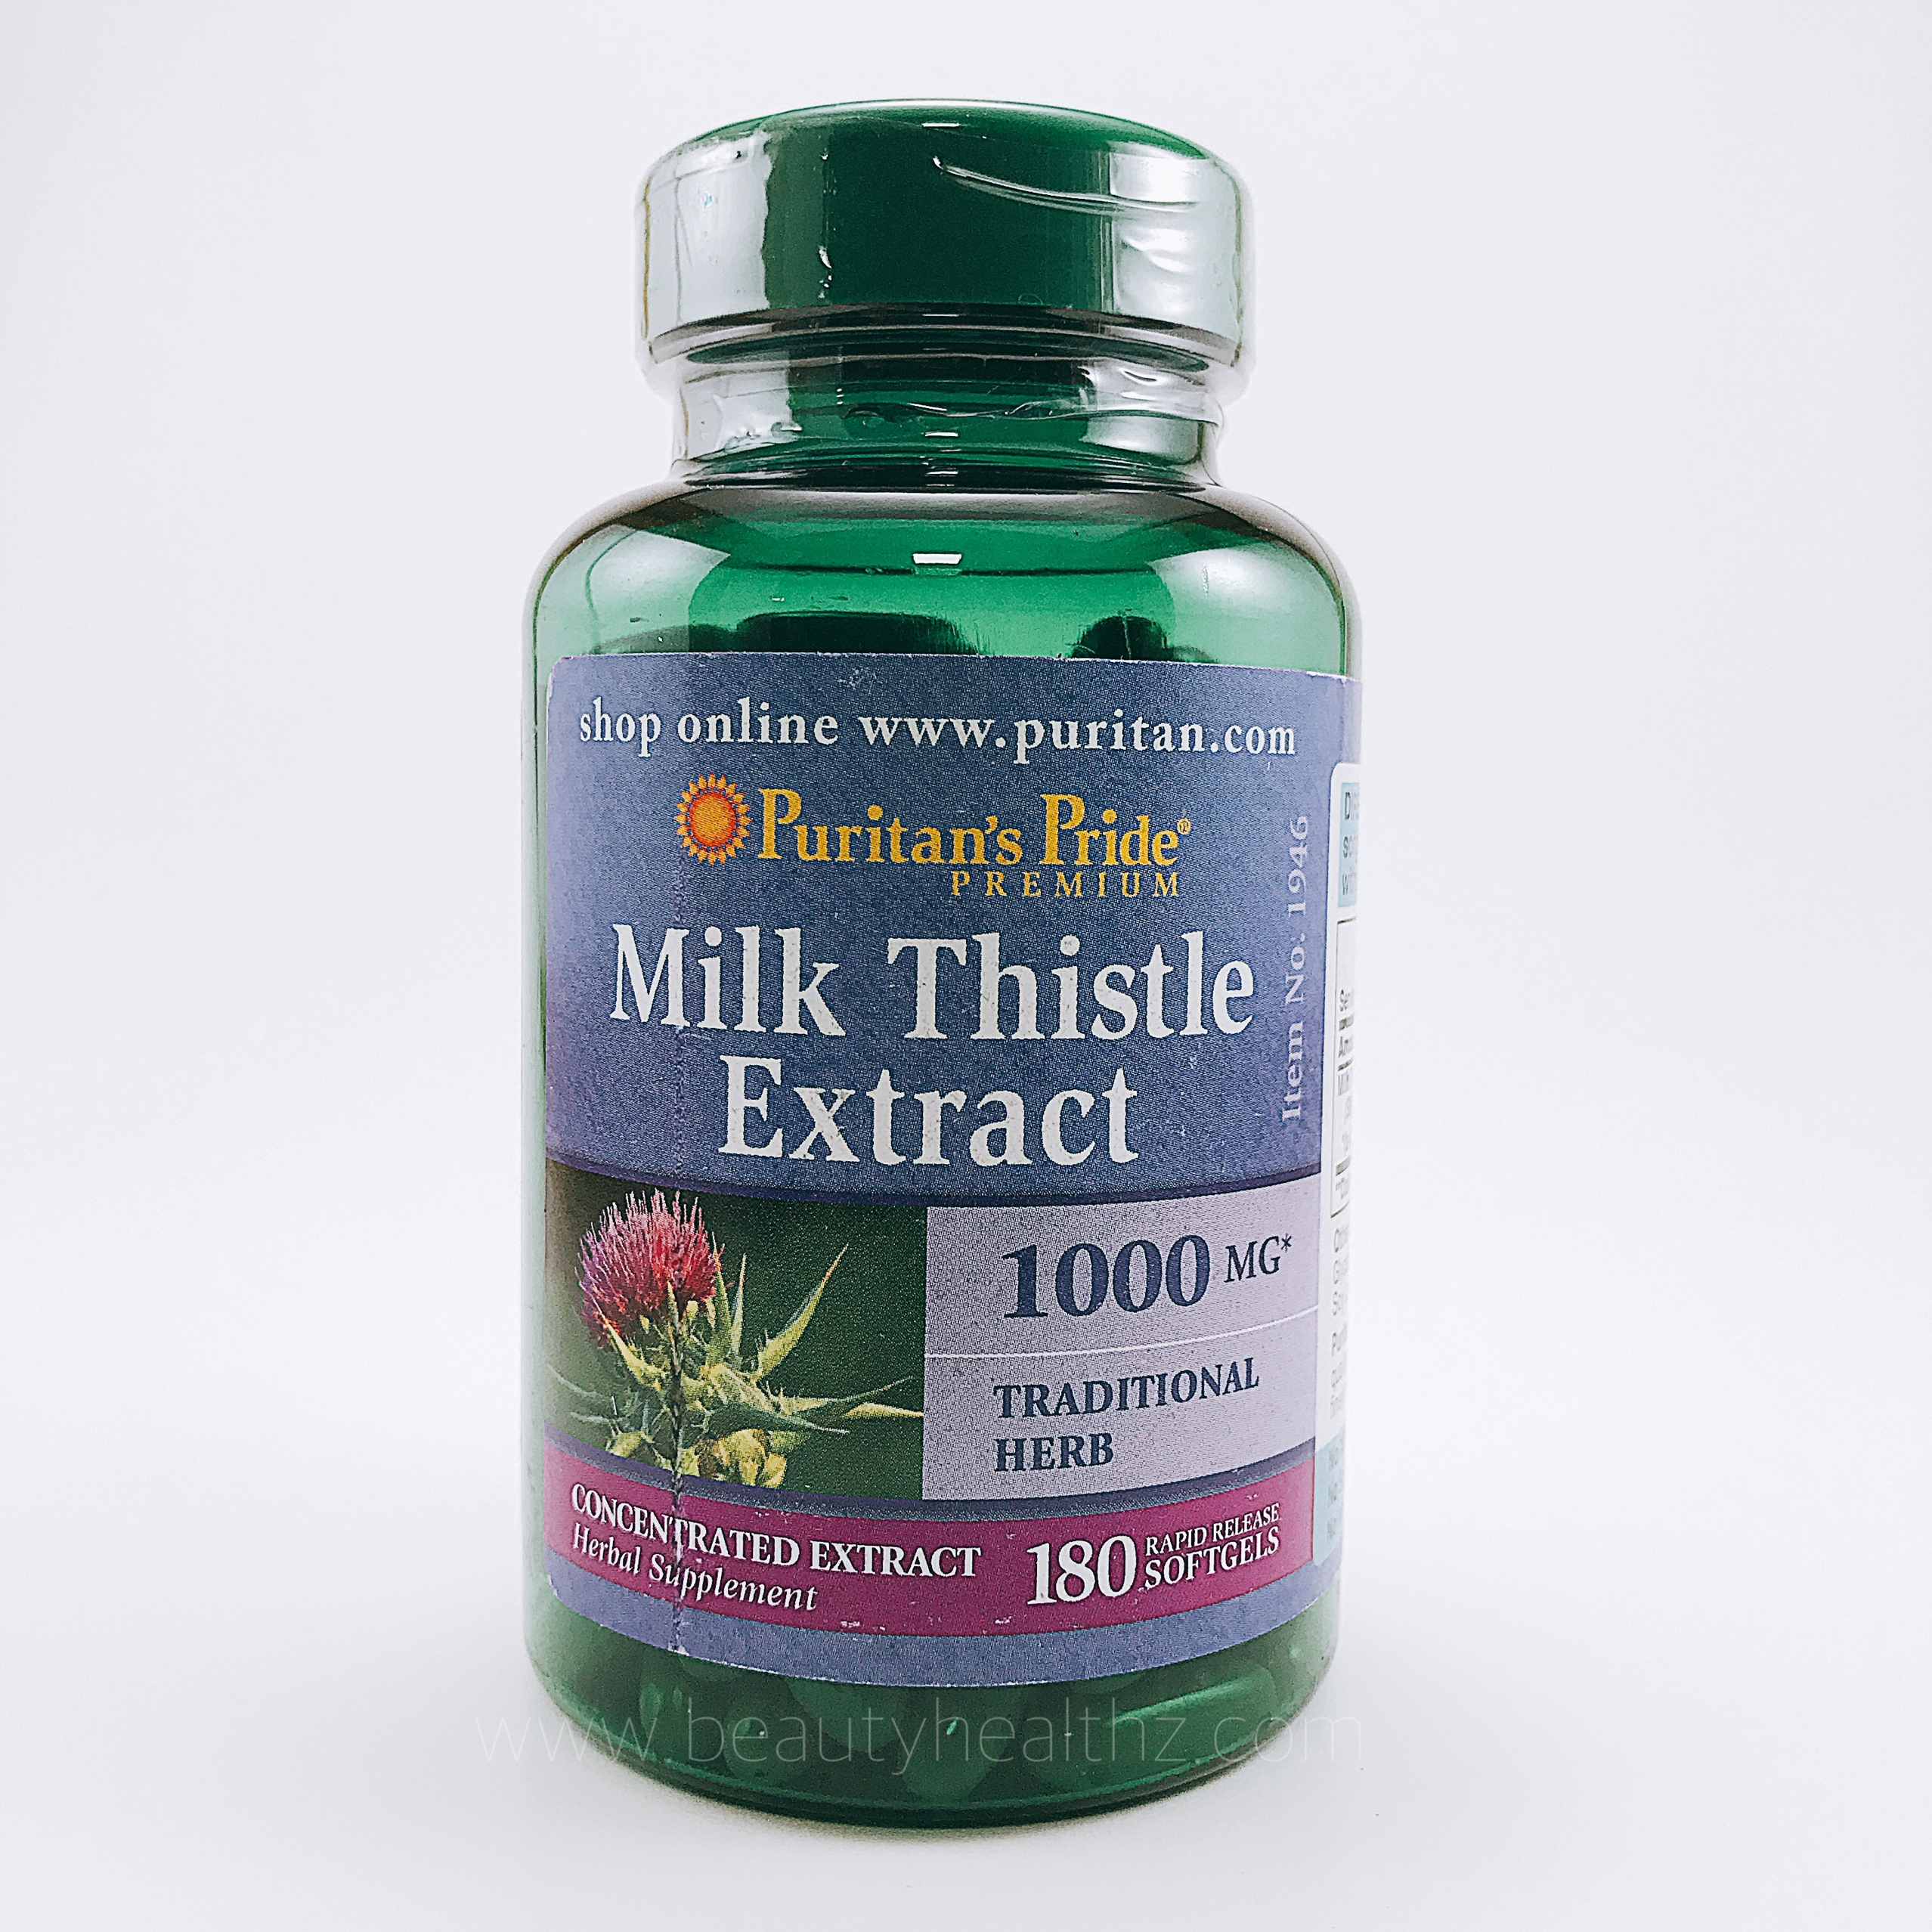 Puritan's Pride, Milk Thistle 4:1 Extract 1000 mg (Silymarin), 180 Softgels